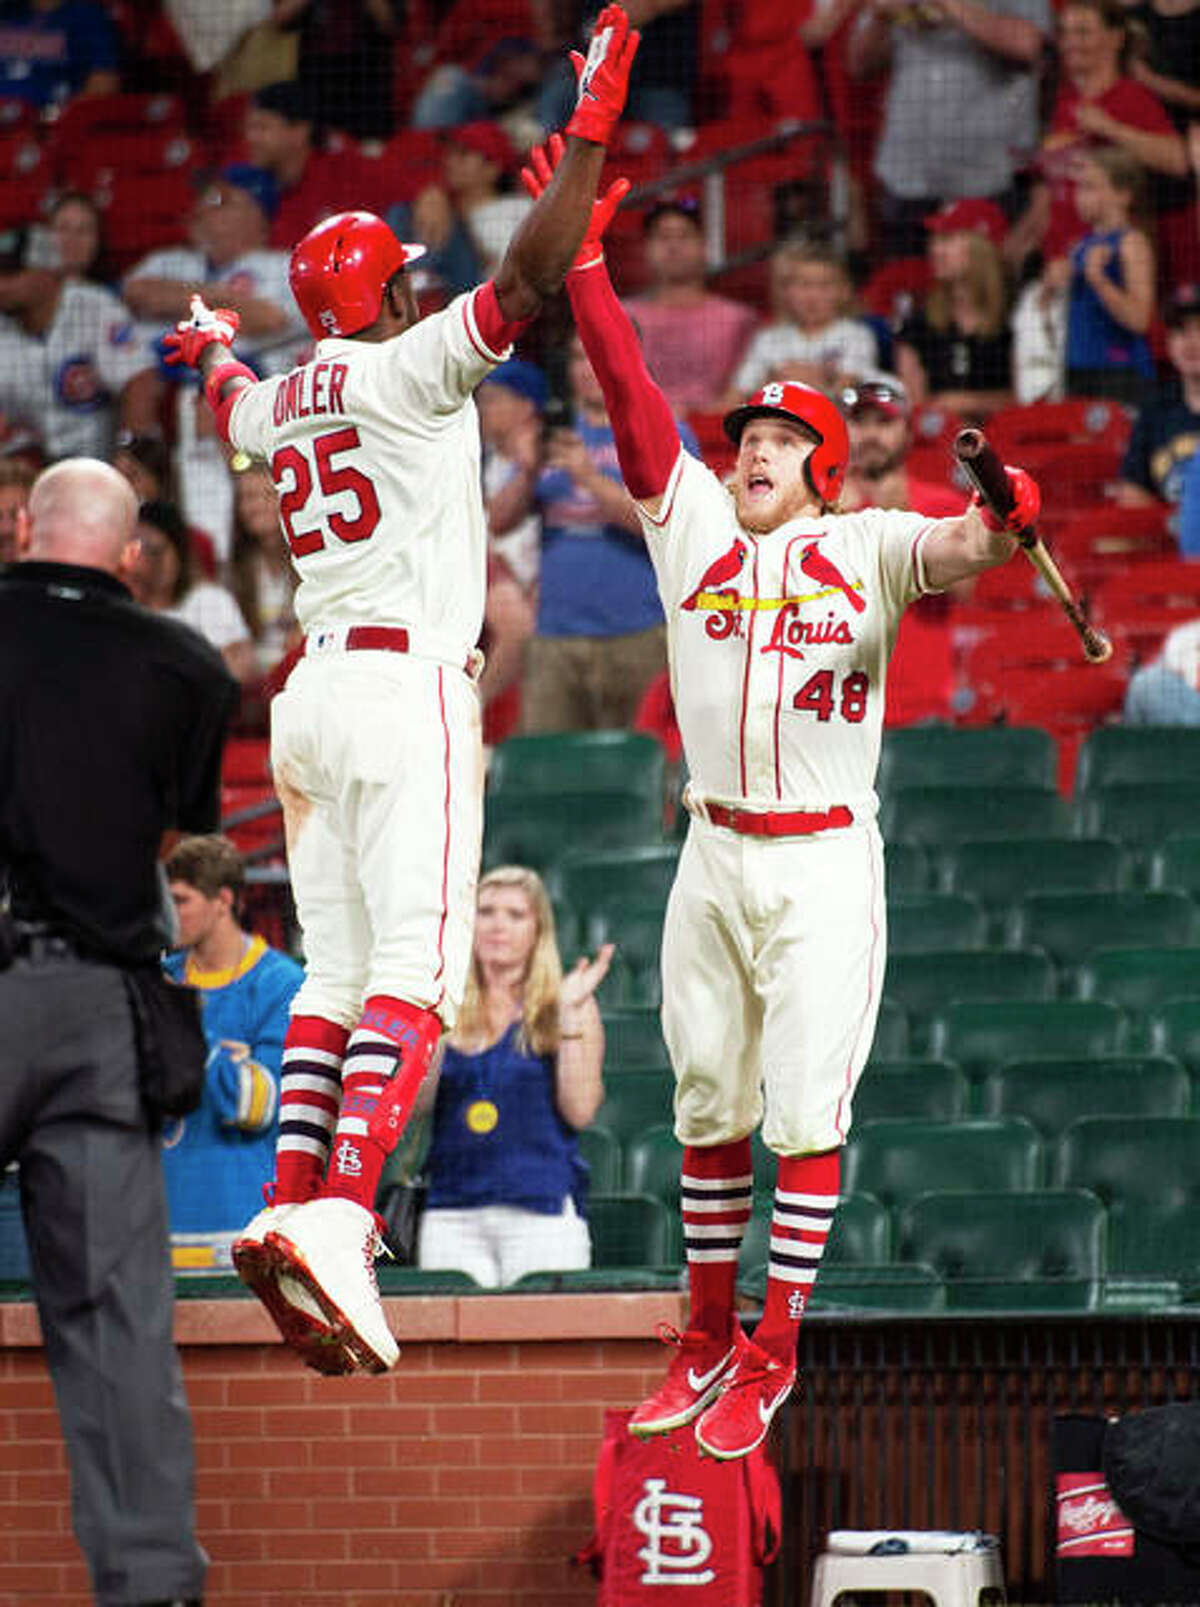 The Cardinals' Dexter Fowler (left) celebrates his home run with teammate Harrison Bader during the eighth inning of against the Cubs after midnight early Sunday at Busch Stadium. Bader then homered to go back-to-back in the Cards' 7-4 rain-delayed victory.